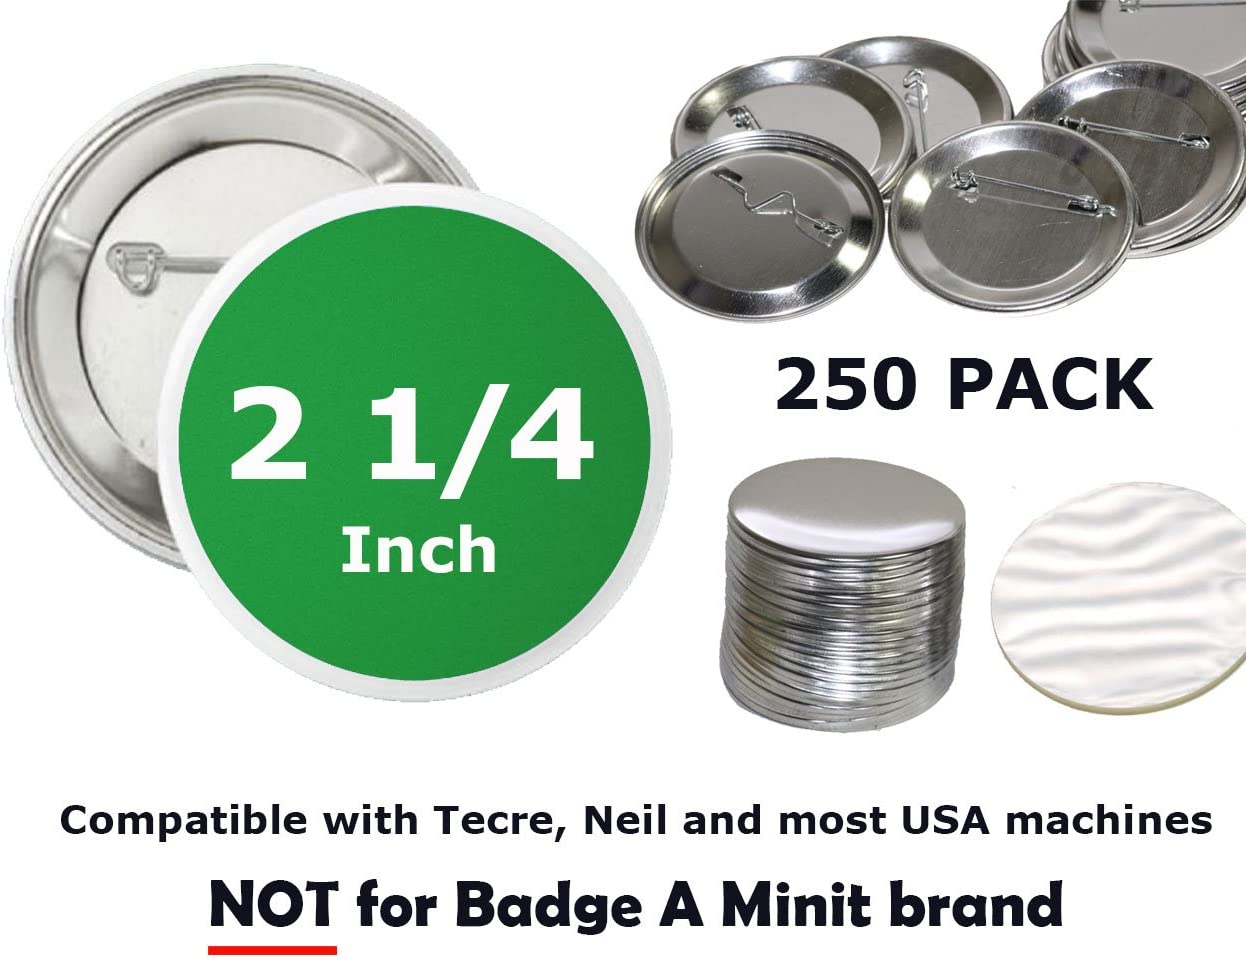 Neil Enterprises Pin Back Button Parts for Use with Machine Pack of 500 2.25 Inch